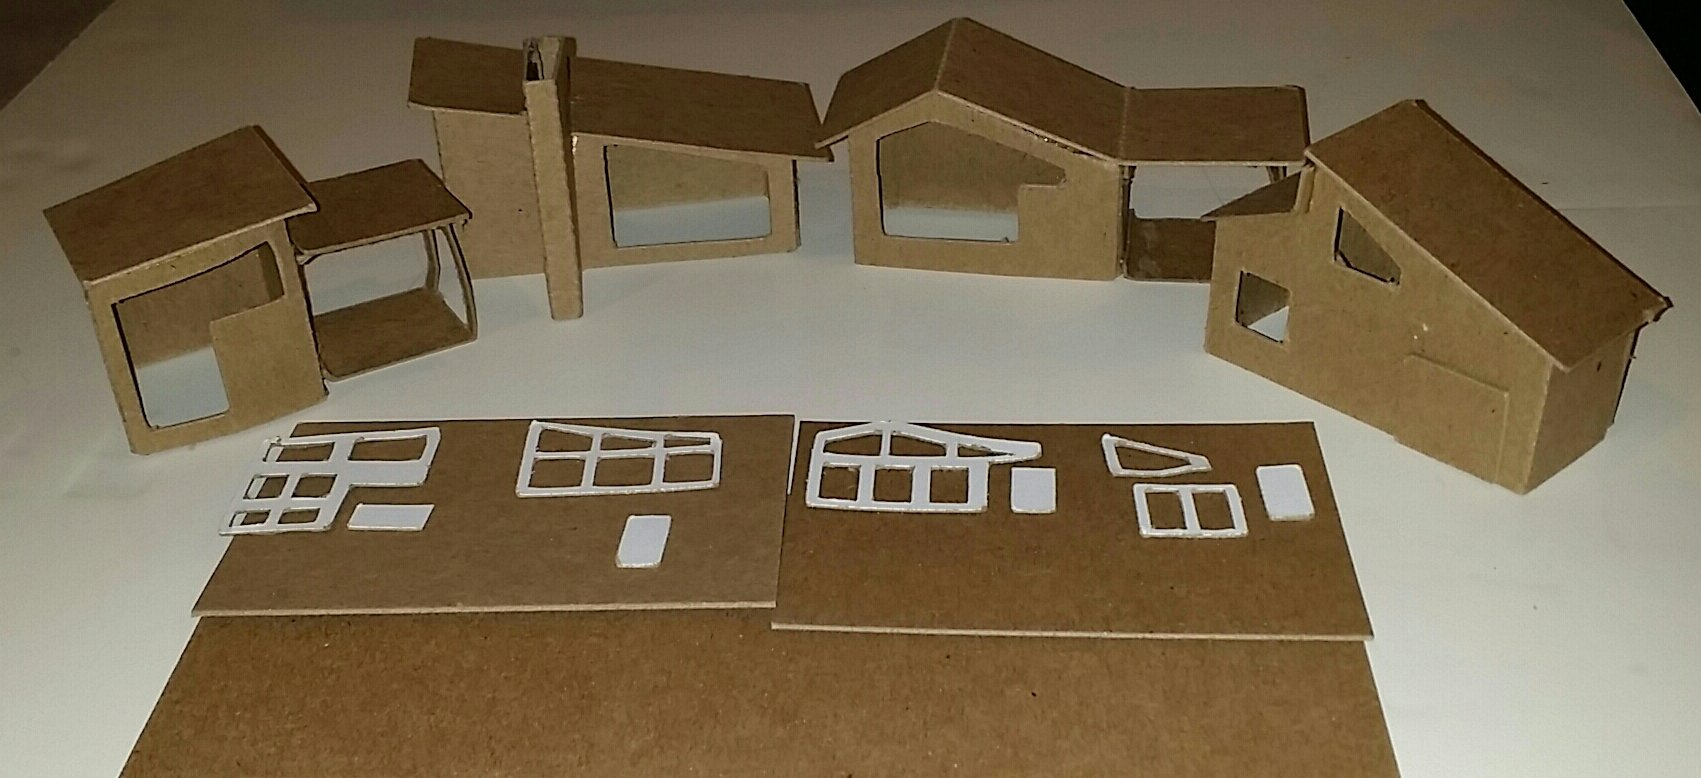 Mini Mid Century Modern Houses- Set of 4 DIY Putz Style Houses